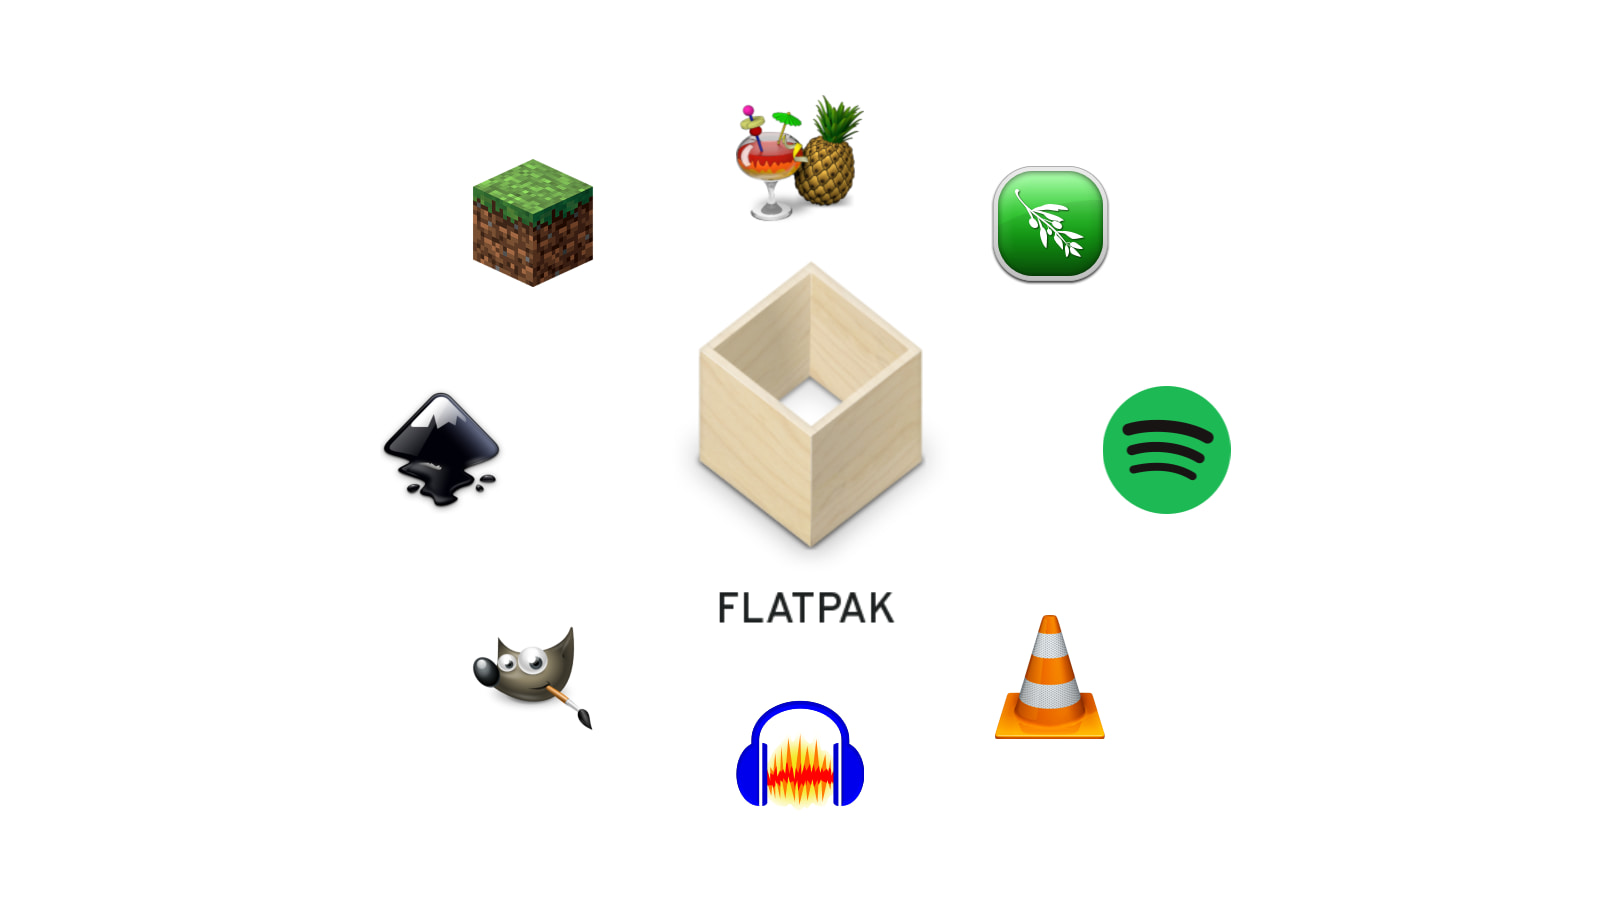 Install these popular desktop apps and more on your Chromebook with Flatpak